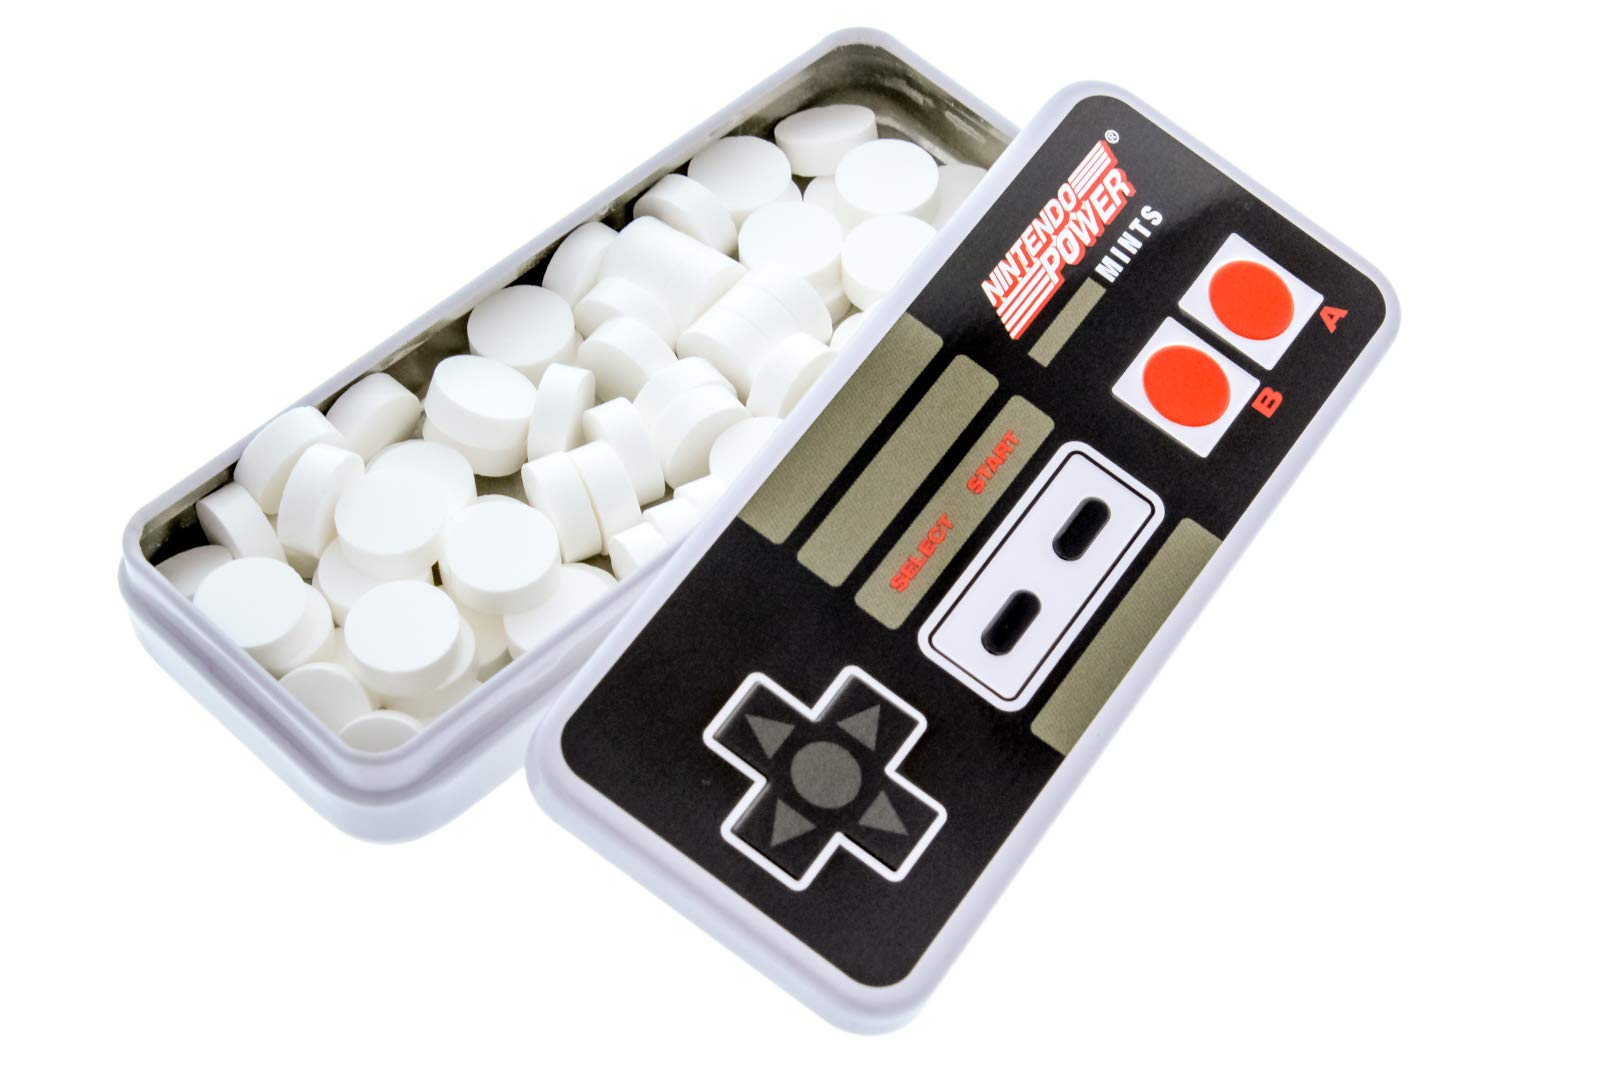 Nintendo Controller Mints - Vintage Nintendo Power Controller Tin - Includes ''How To Build a Candy Buffet'' Guide (18 Pack Display) by Candy Envy